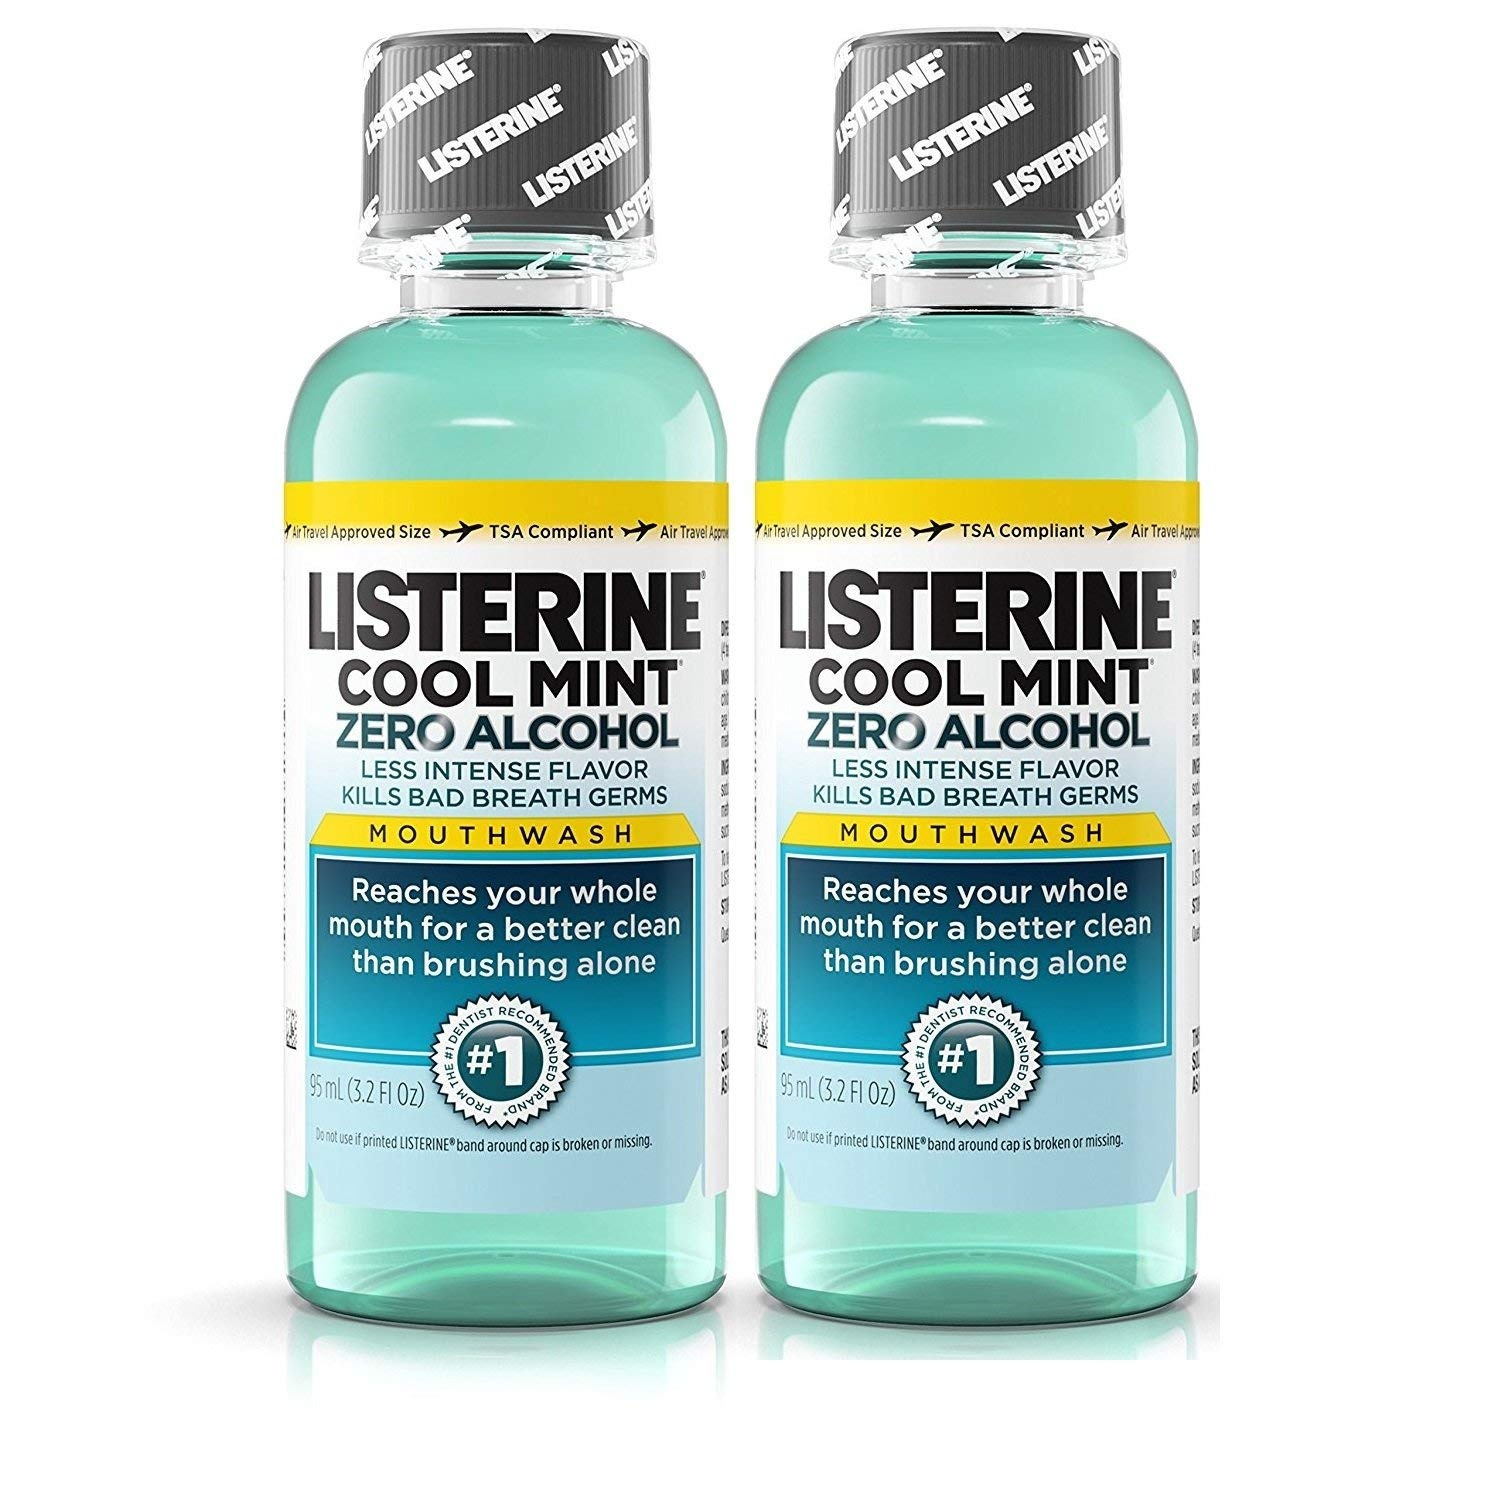 a3eacad68ad6 Listerine Cool Mint Zero Alcohol Mouthwash, Travel Size 3.2 Ounces (95ml) -  Pack of 2